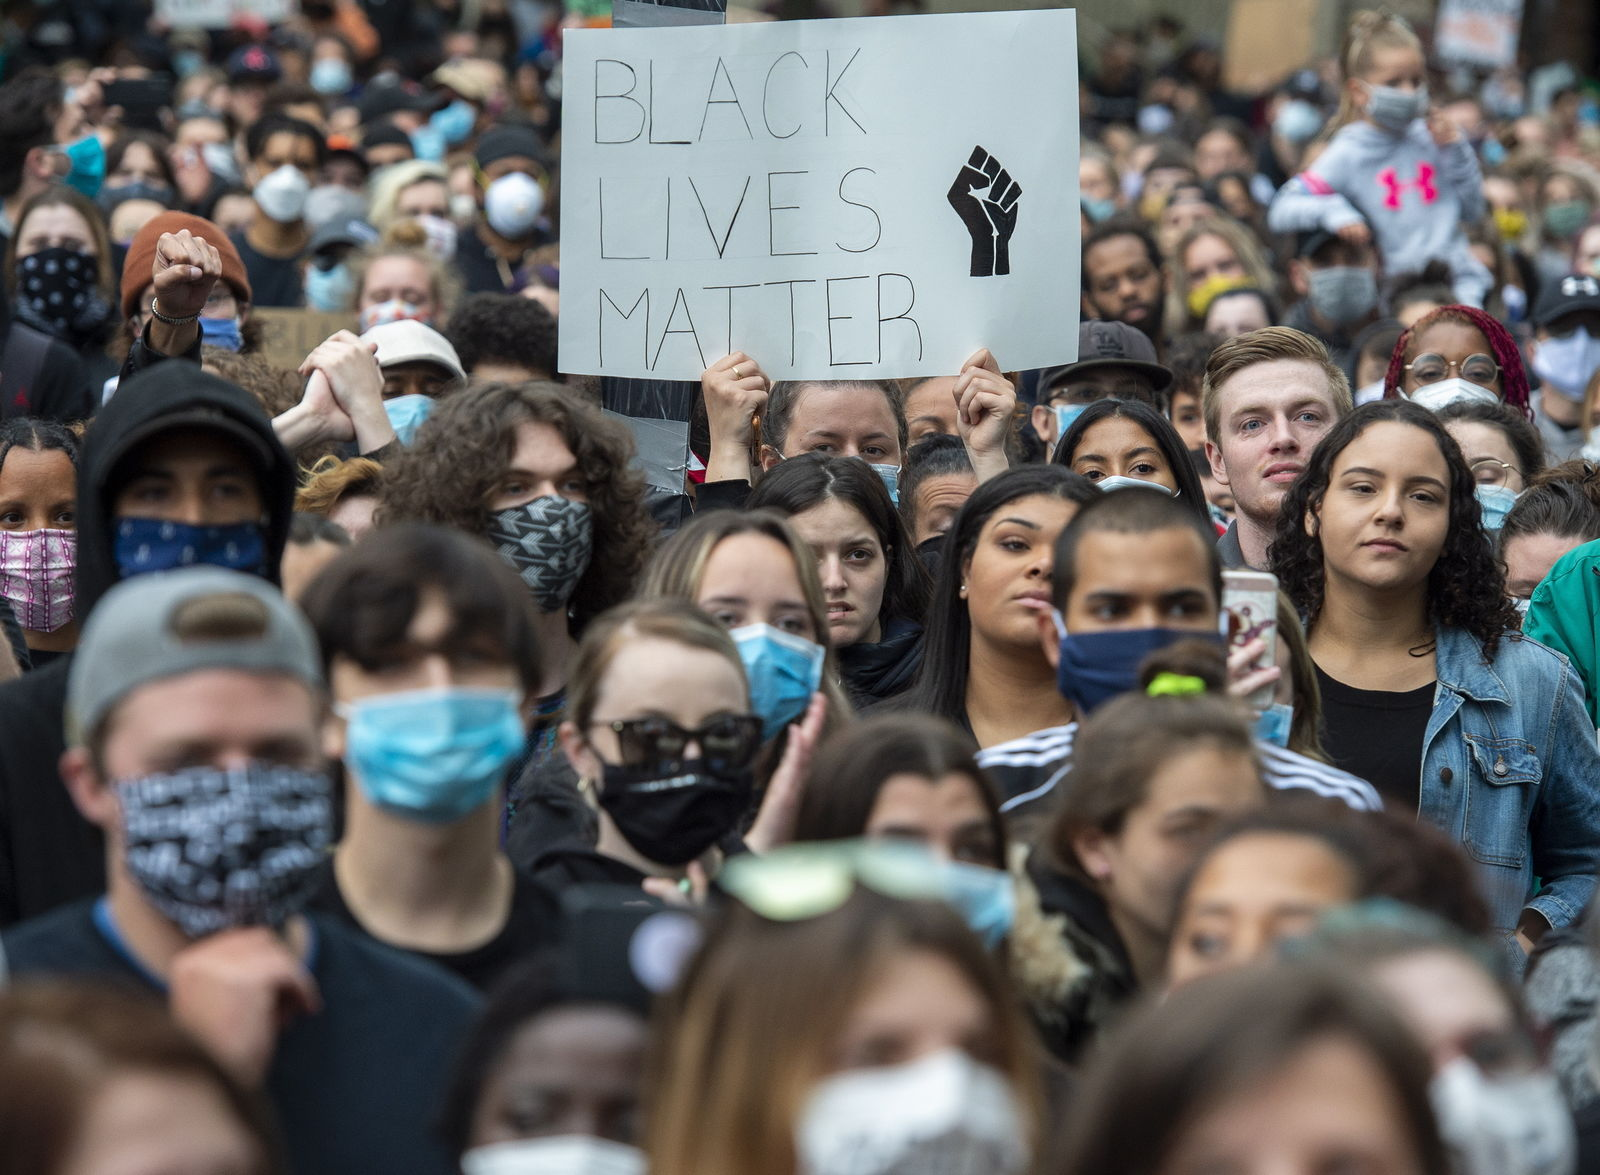 Protesters demonstrate against police action in the death of George Floyd and others in Halifax, Nova Scotia on Monday, June 1, 2020. (Andrew Vaughan/The Canadian Press via AP)